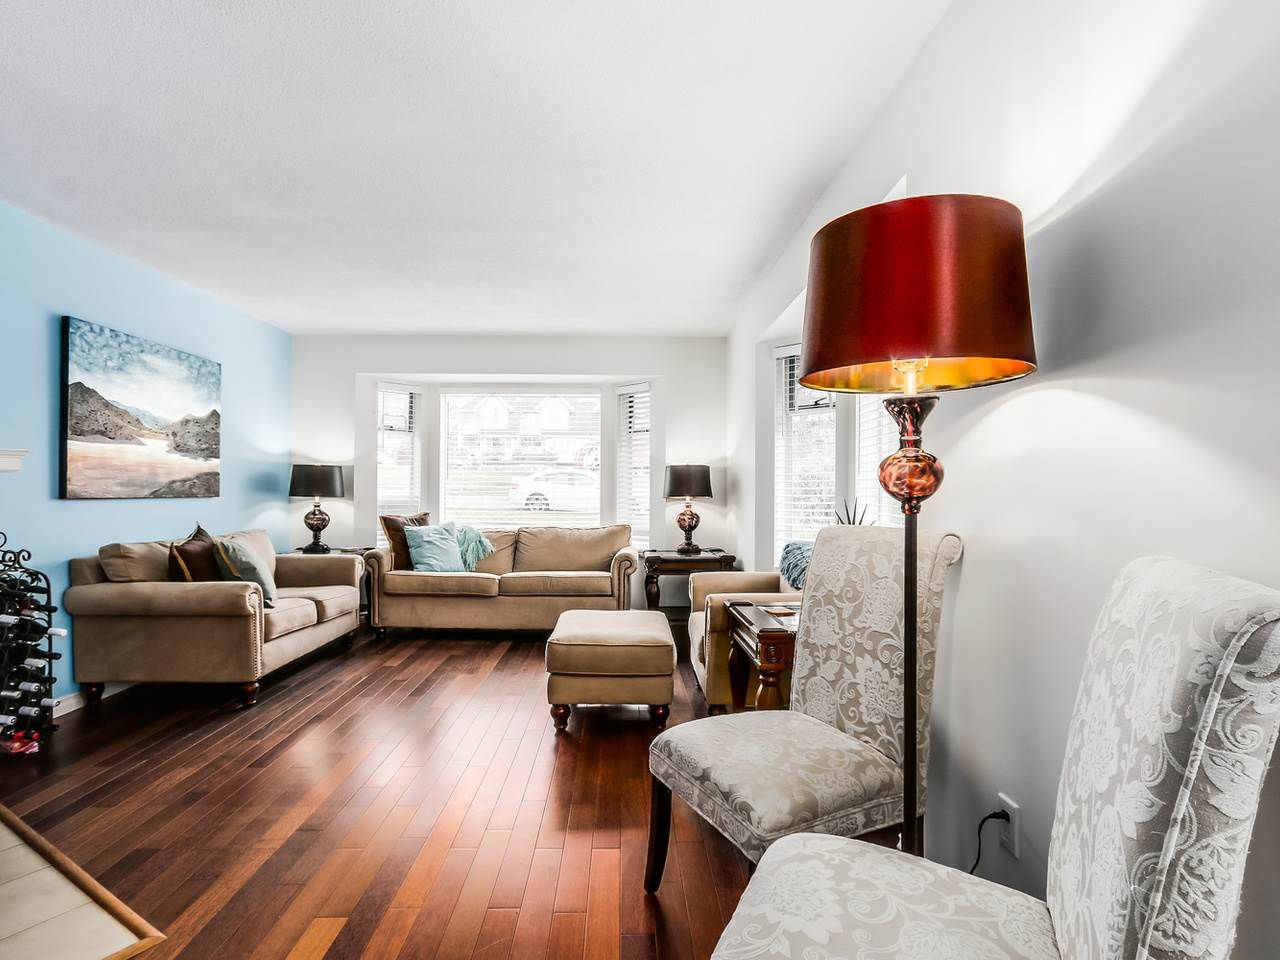 Photo 4: Photos: 2 269 E KEITH ROAD in North Vancouver: Lower Lonsdale House 1/2 Duplex for sale : MLS®# R2025742